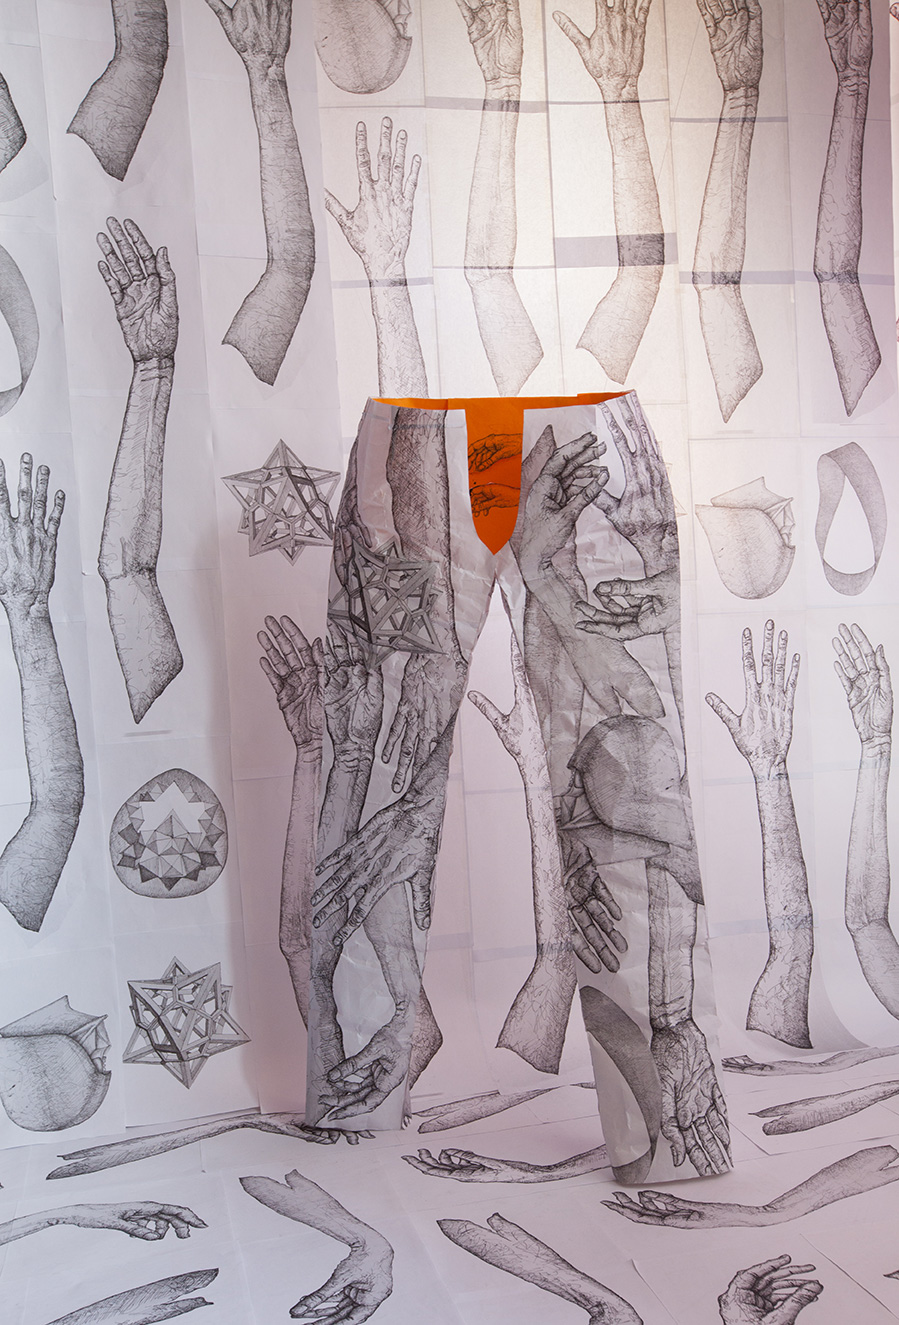 Ingredients of a Subway Car Installation with Pen and Ink Drawings by NYC based artist Mirena Rhee